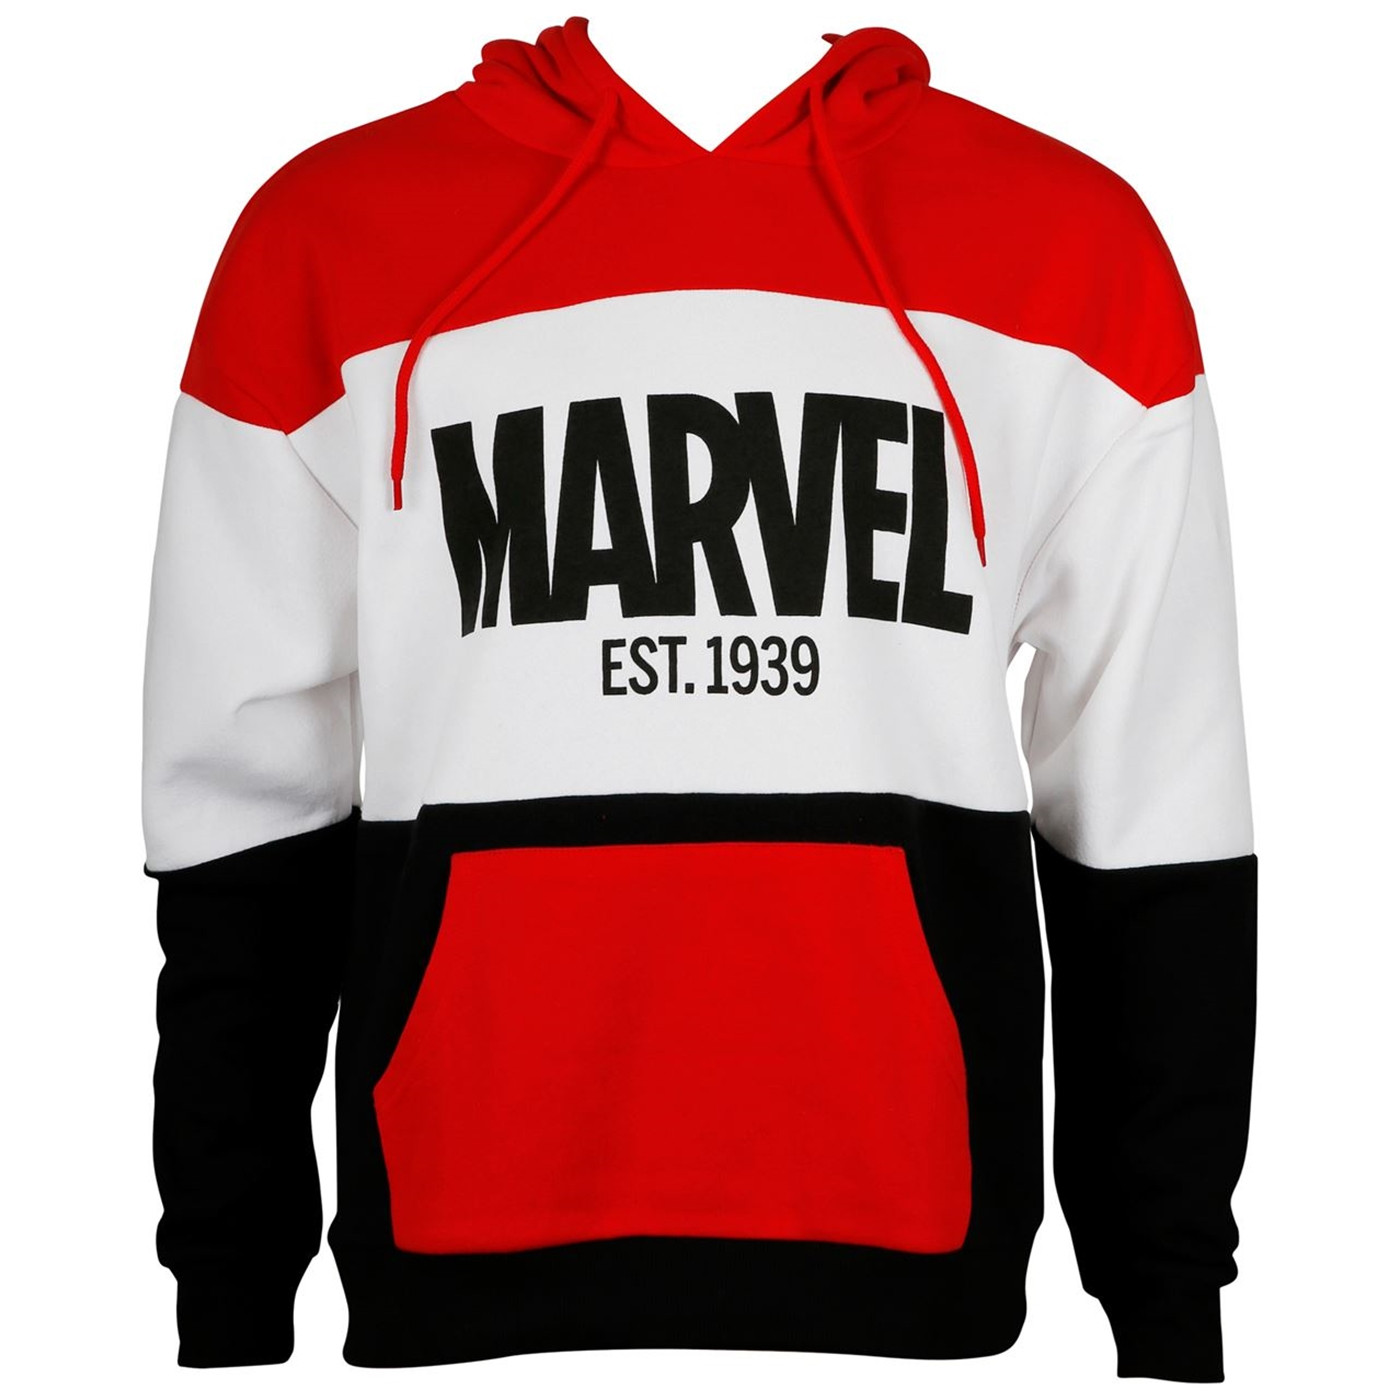 Marvel Est.1939 Red White & Black Men's Hoodie